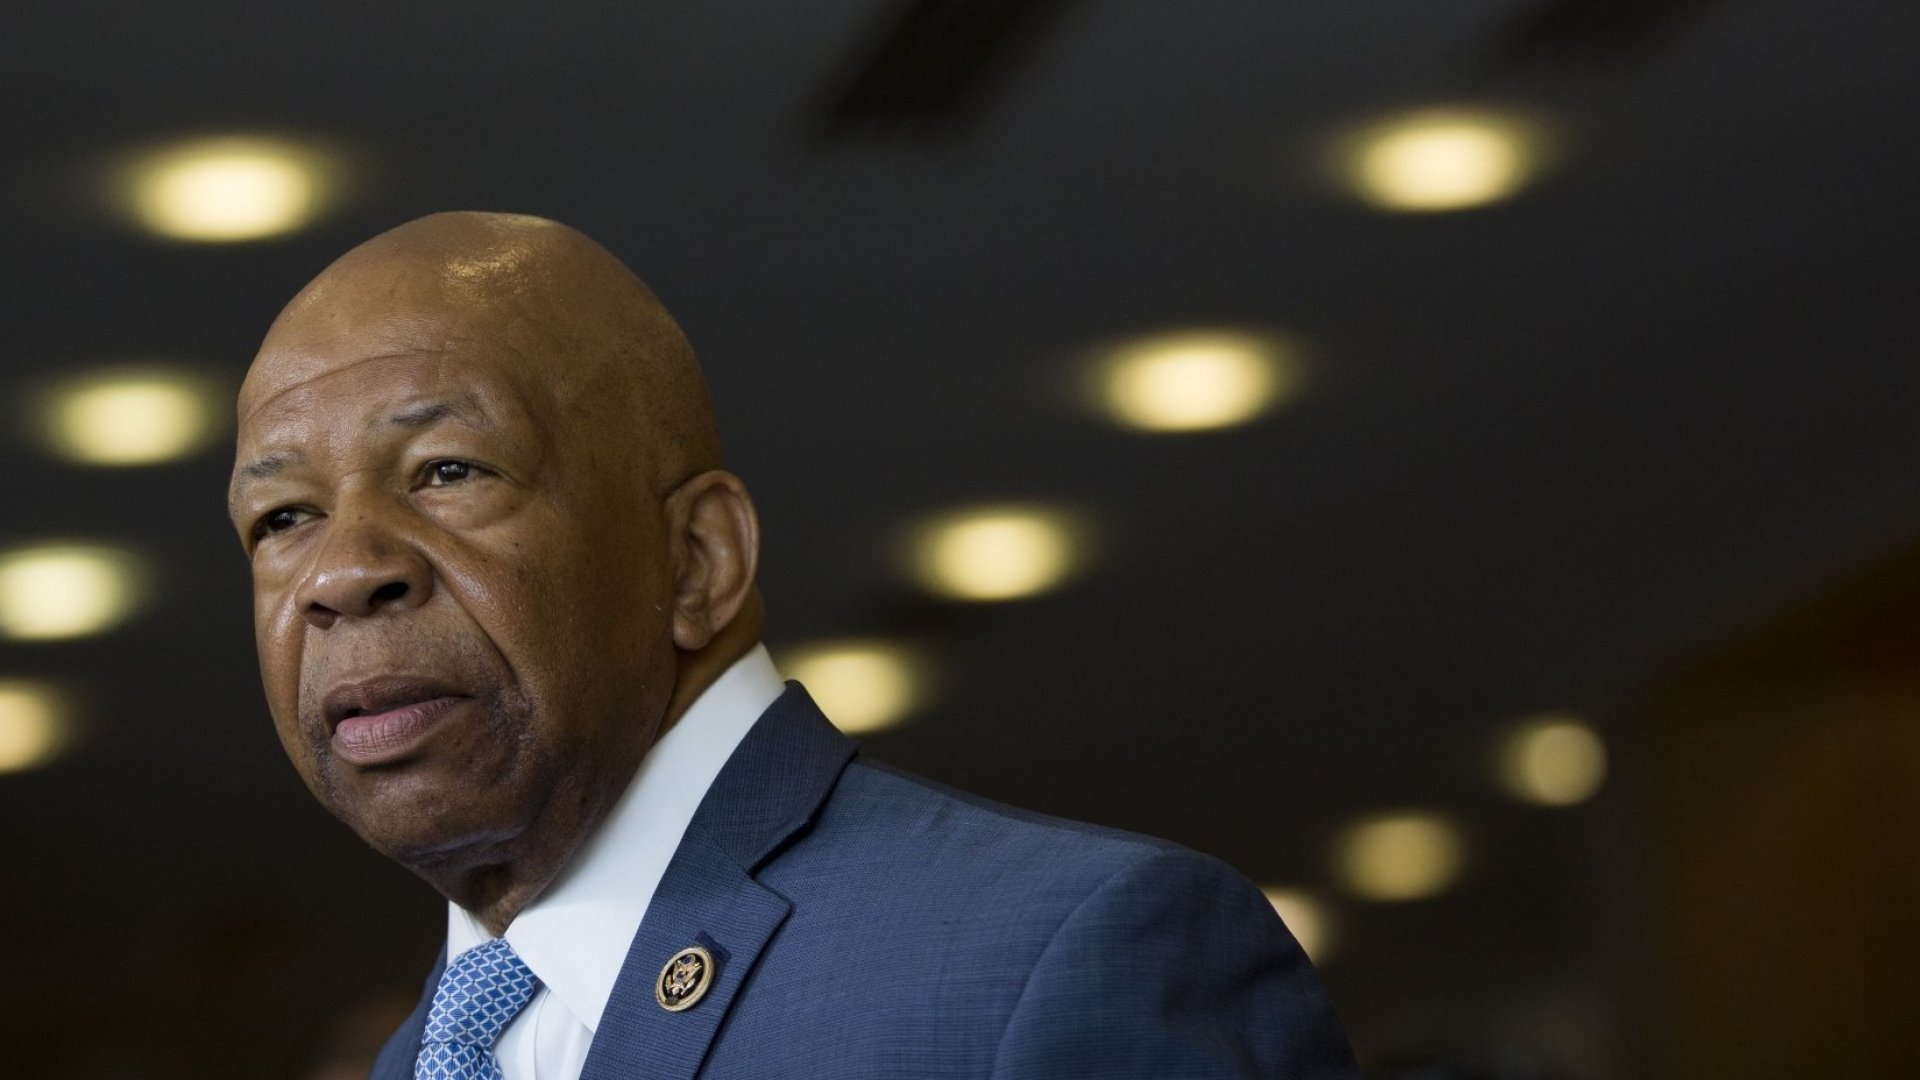 Elijah Cummings Recited a 46-Word Poem In His Very First Speech to Congress. Read It Now and Be Inspired